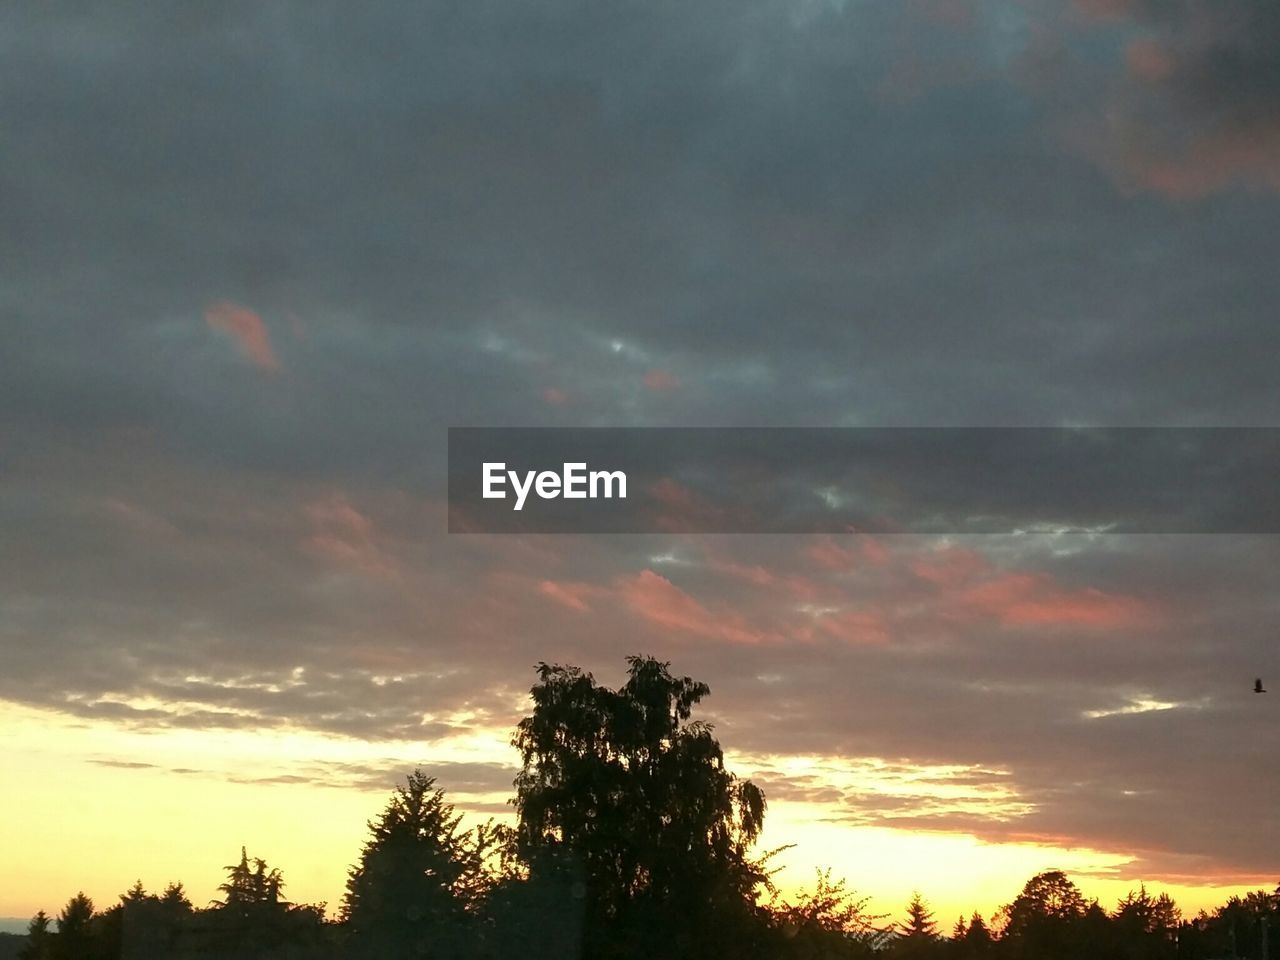 sunset, sky, tree, cloud - sky, nature, silhouette, beauty in nature, scenics, tranquility, tranquil scene, no people, dusk, low angle view, outdoors, growth, day